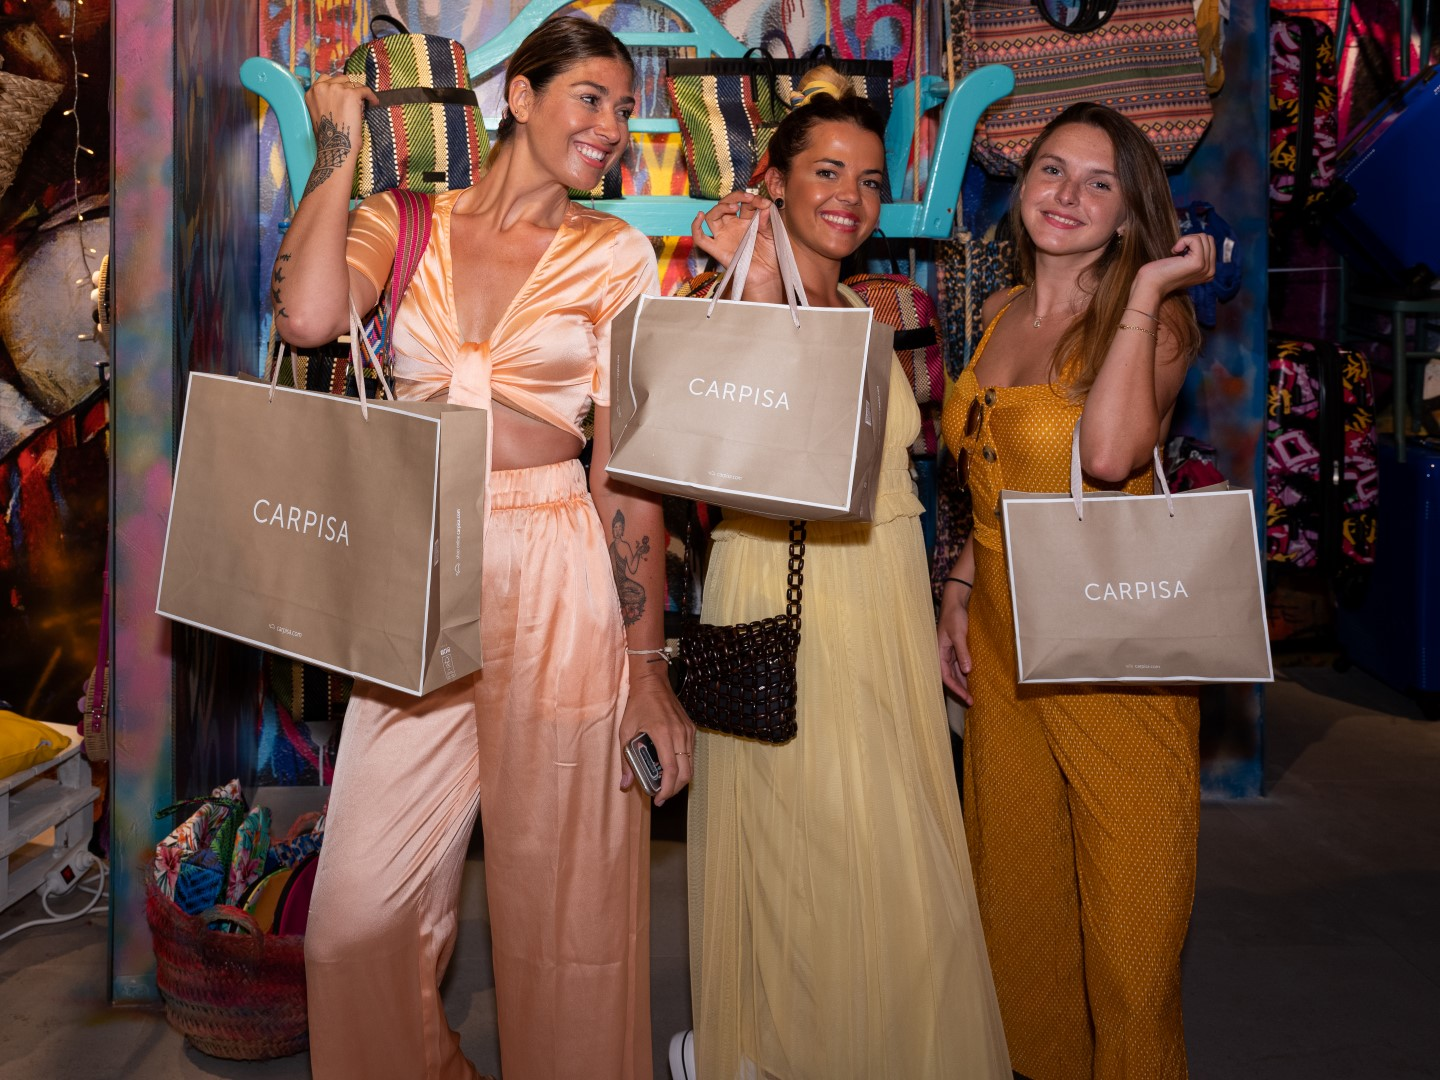 Carpisa Ibiza pop-up store